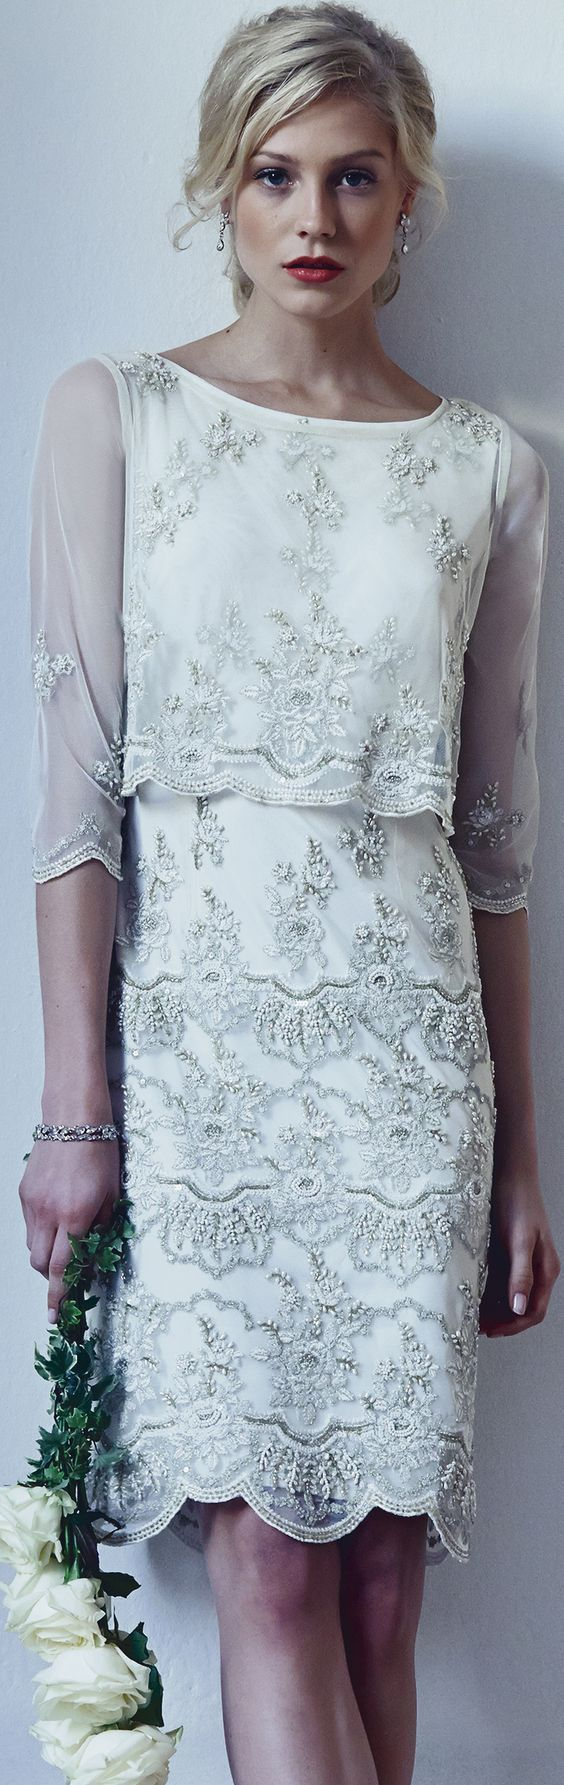 31 Gorgeous Mother Of The Groom Dresses For Winter Wedding | Groom ...